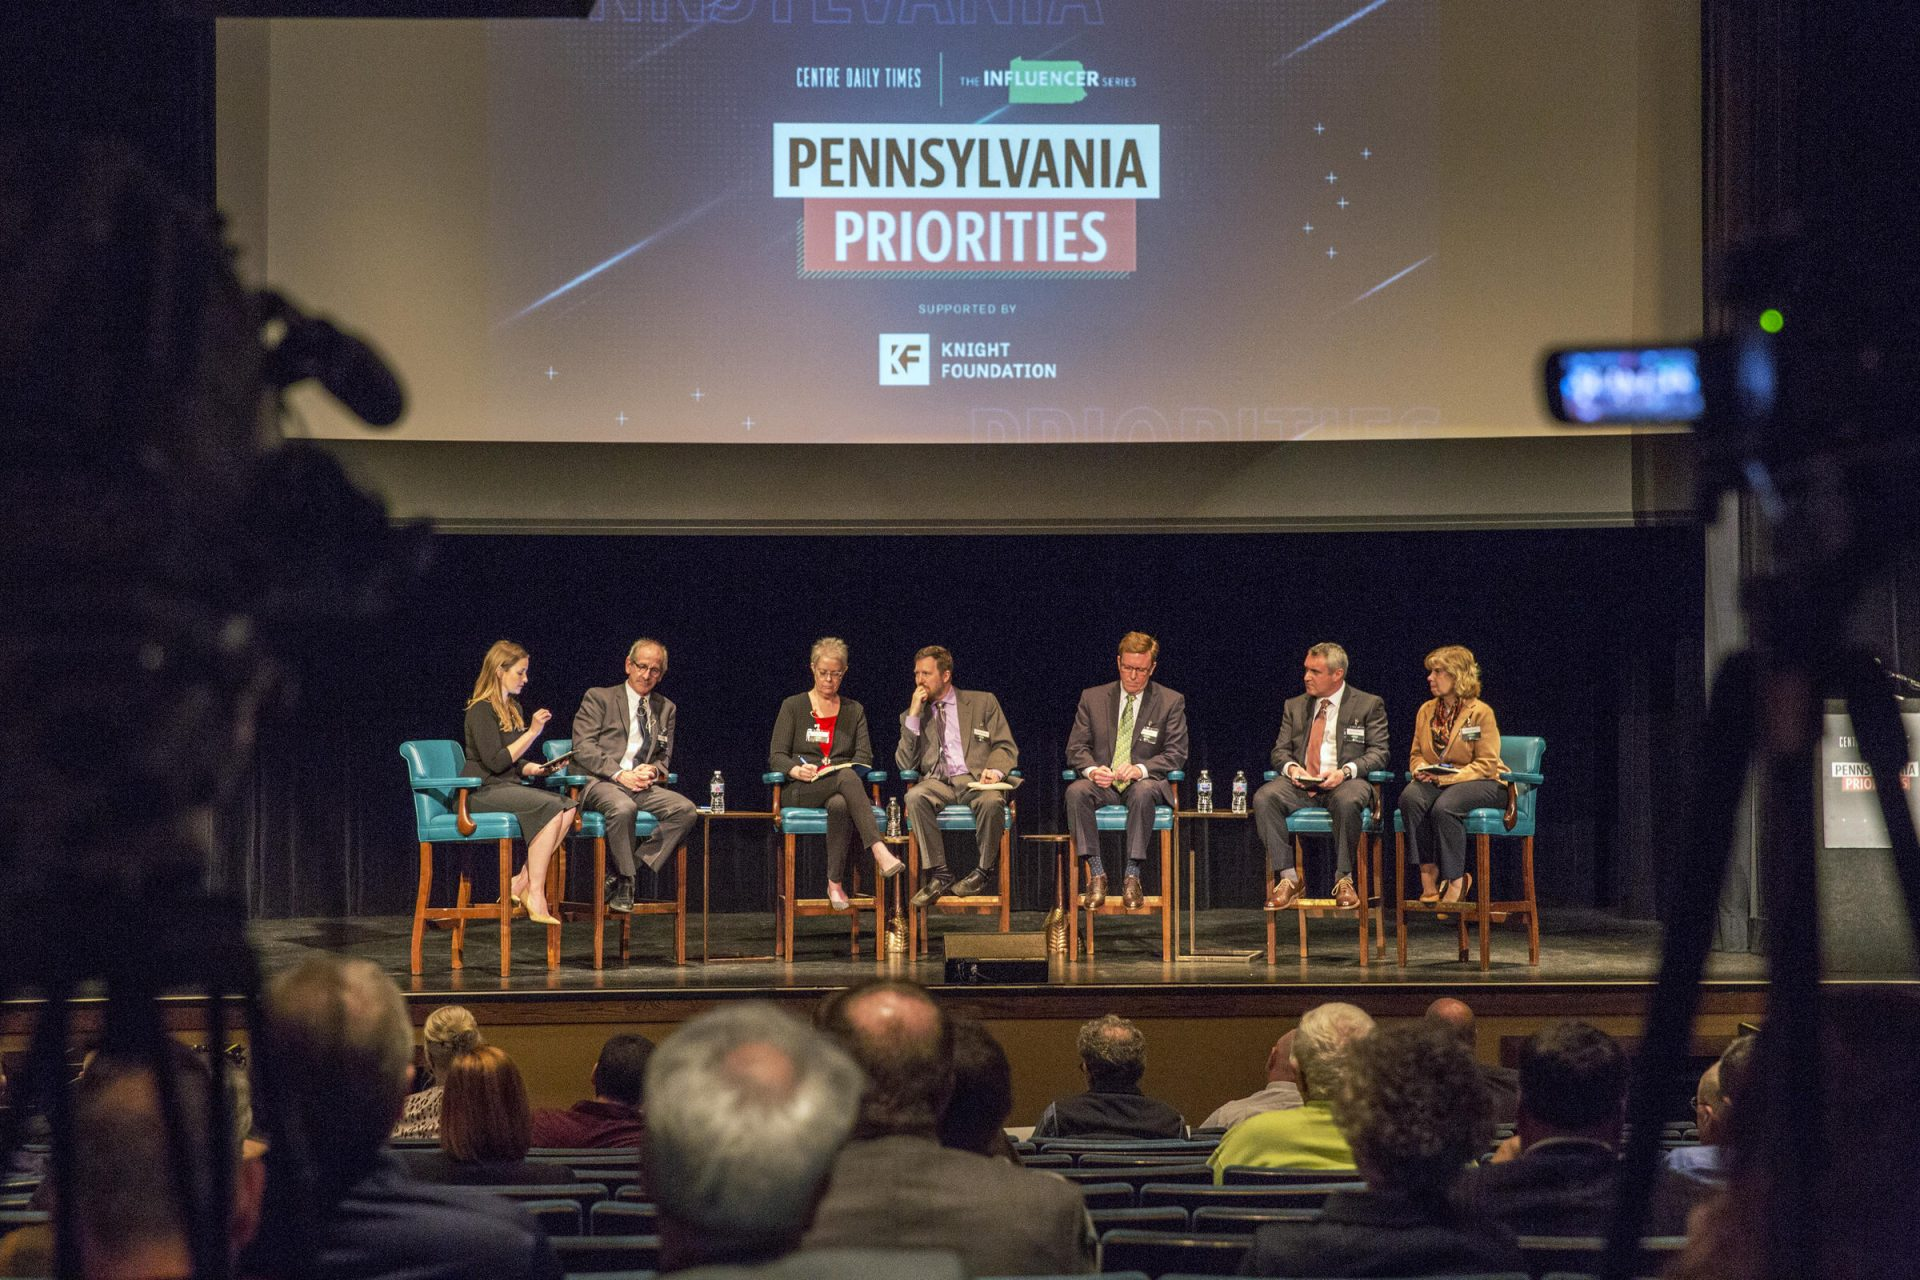 Panelists discussed potential solutions to the rural broadband crisis as a part of the Influencers Project hosted by the Centre Daily Times at the State Theatre.